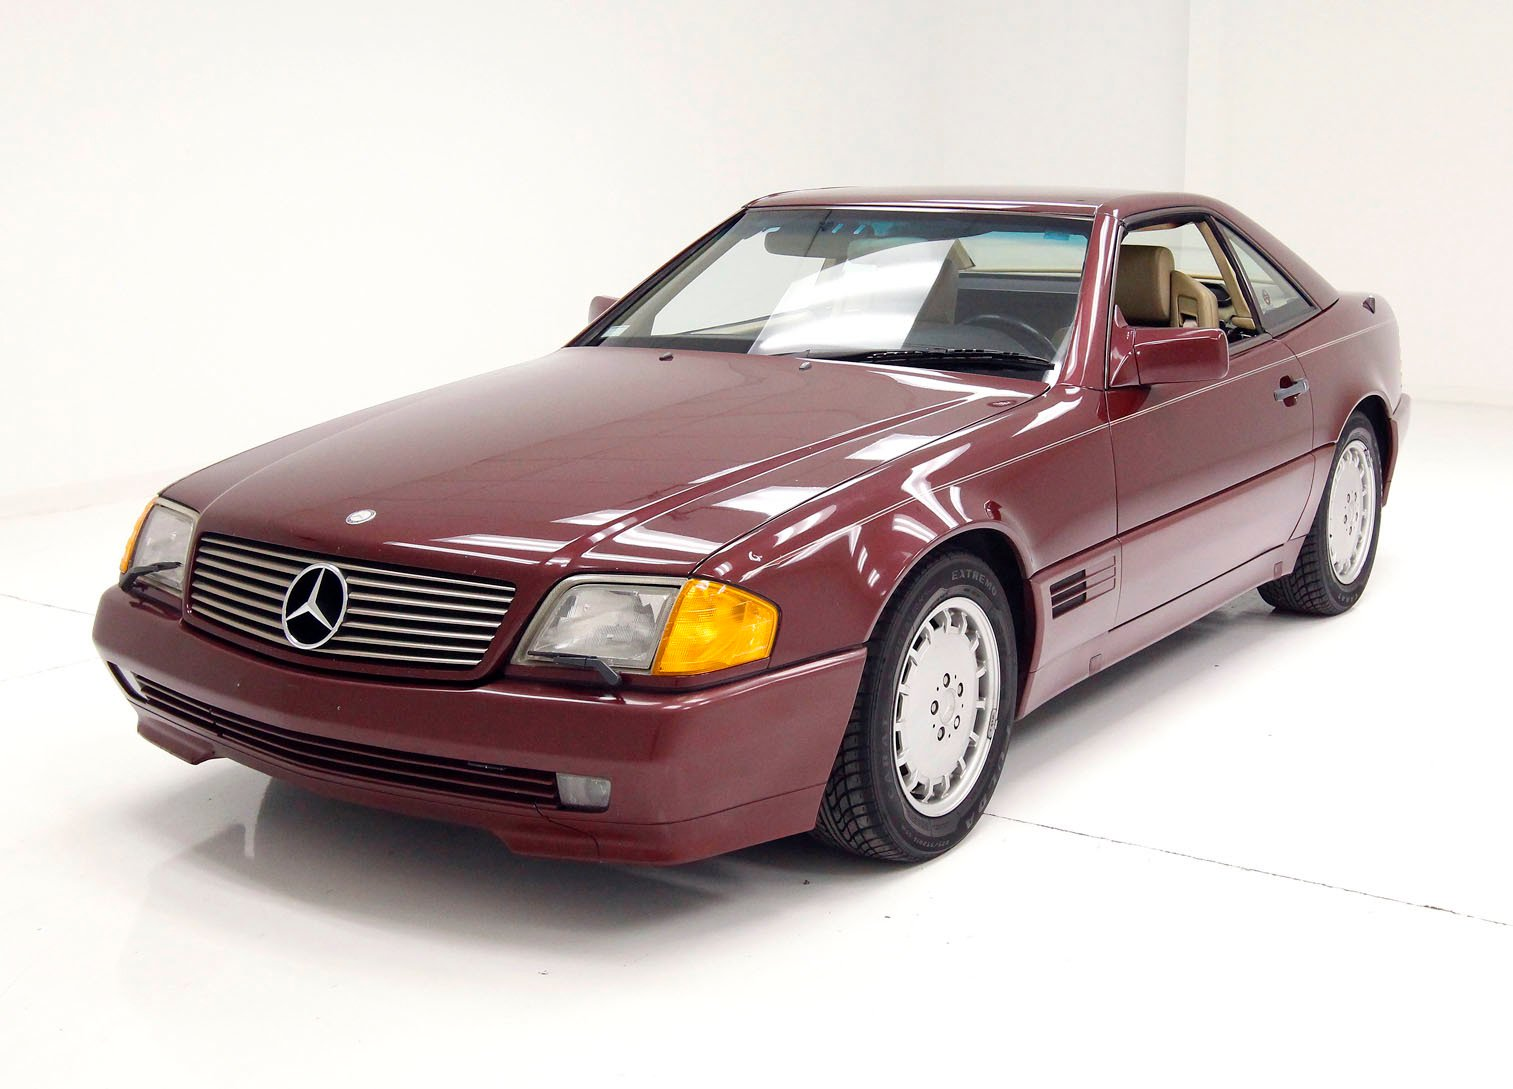 1990 Mercedes-Benz 300SL